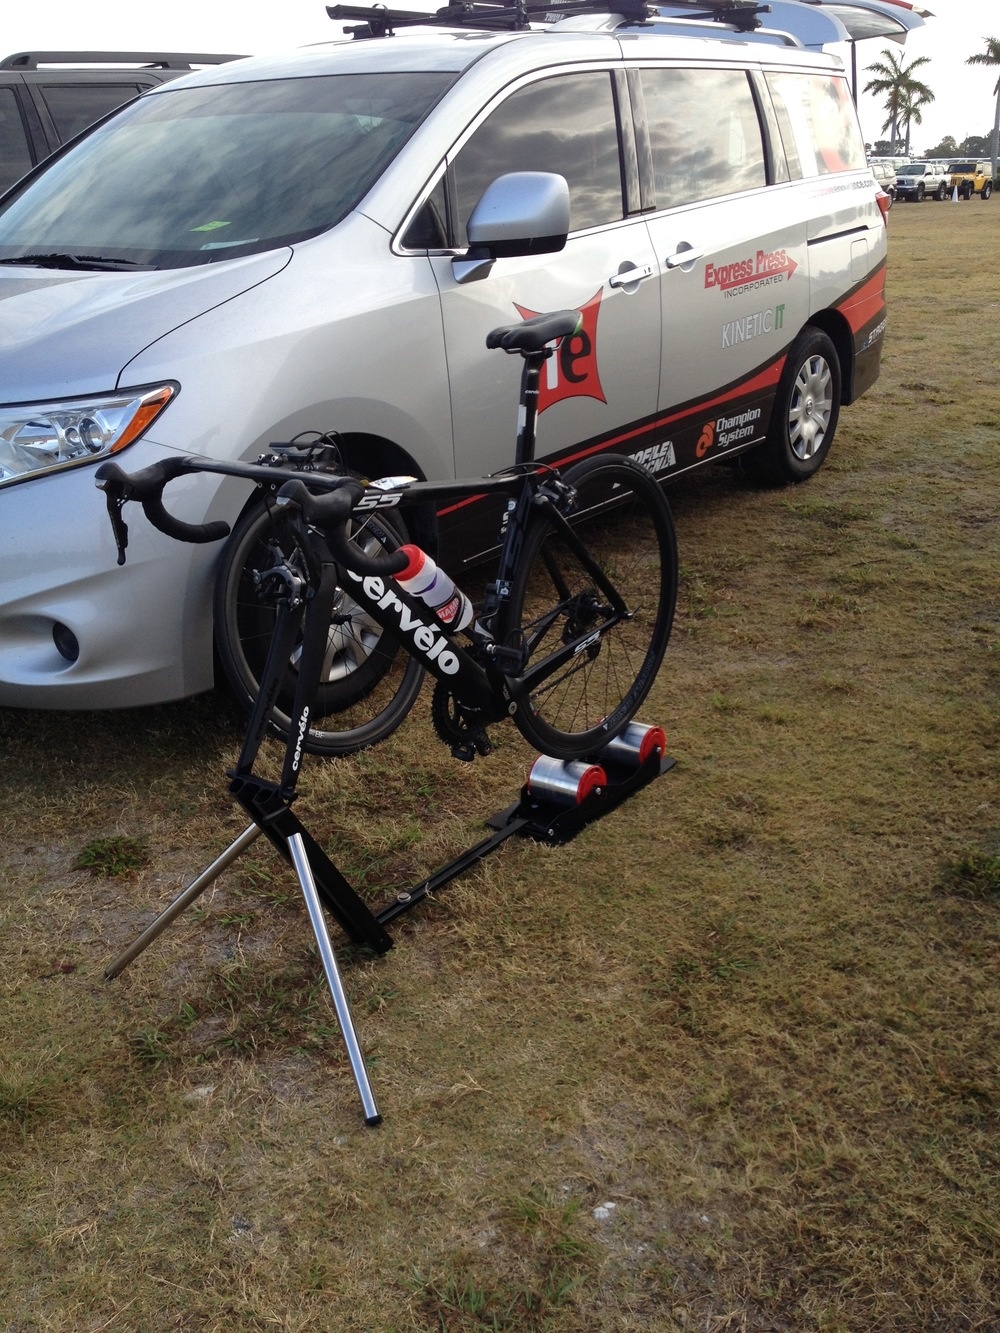 Pre-race warm-up on the bike -- thanks to Sport Crafters for the travel trainer!